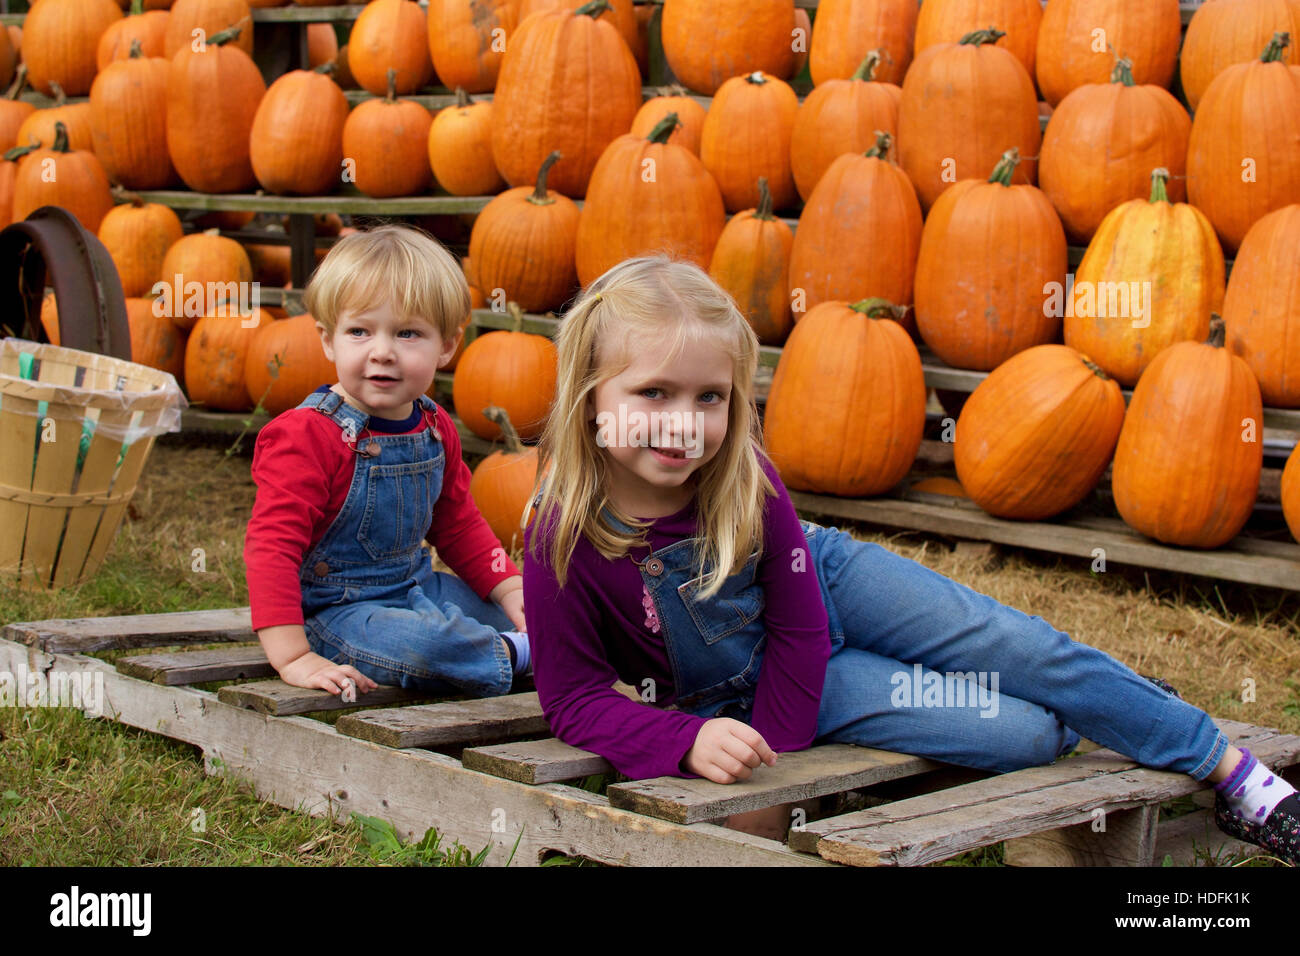 adorable brother and sister siblings wearing overalls sitting in front of pumpkins at farm during fall autumn season - Stock Image